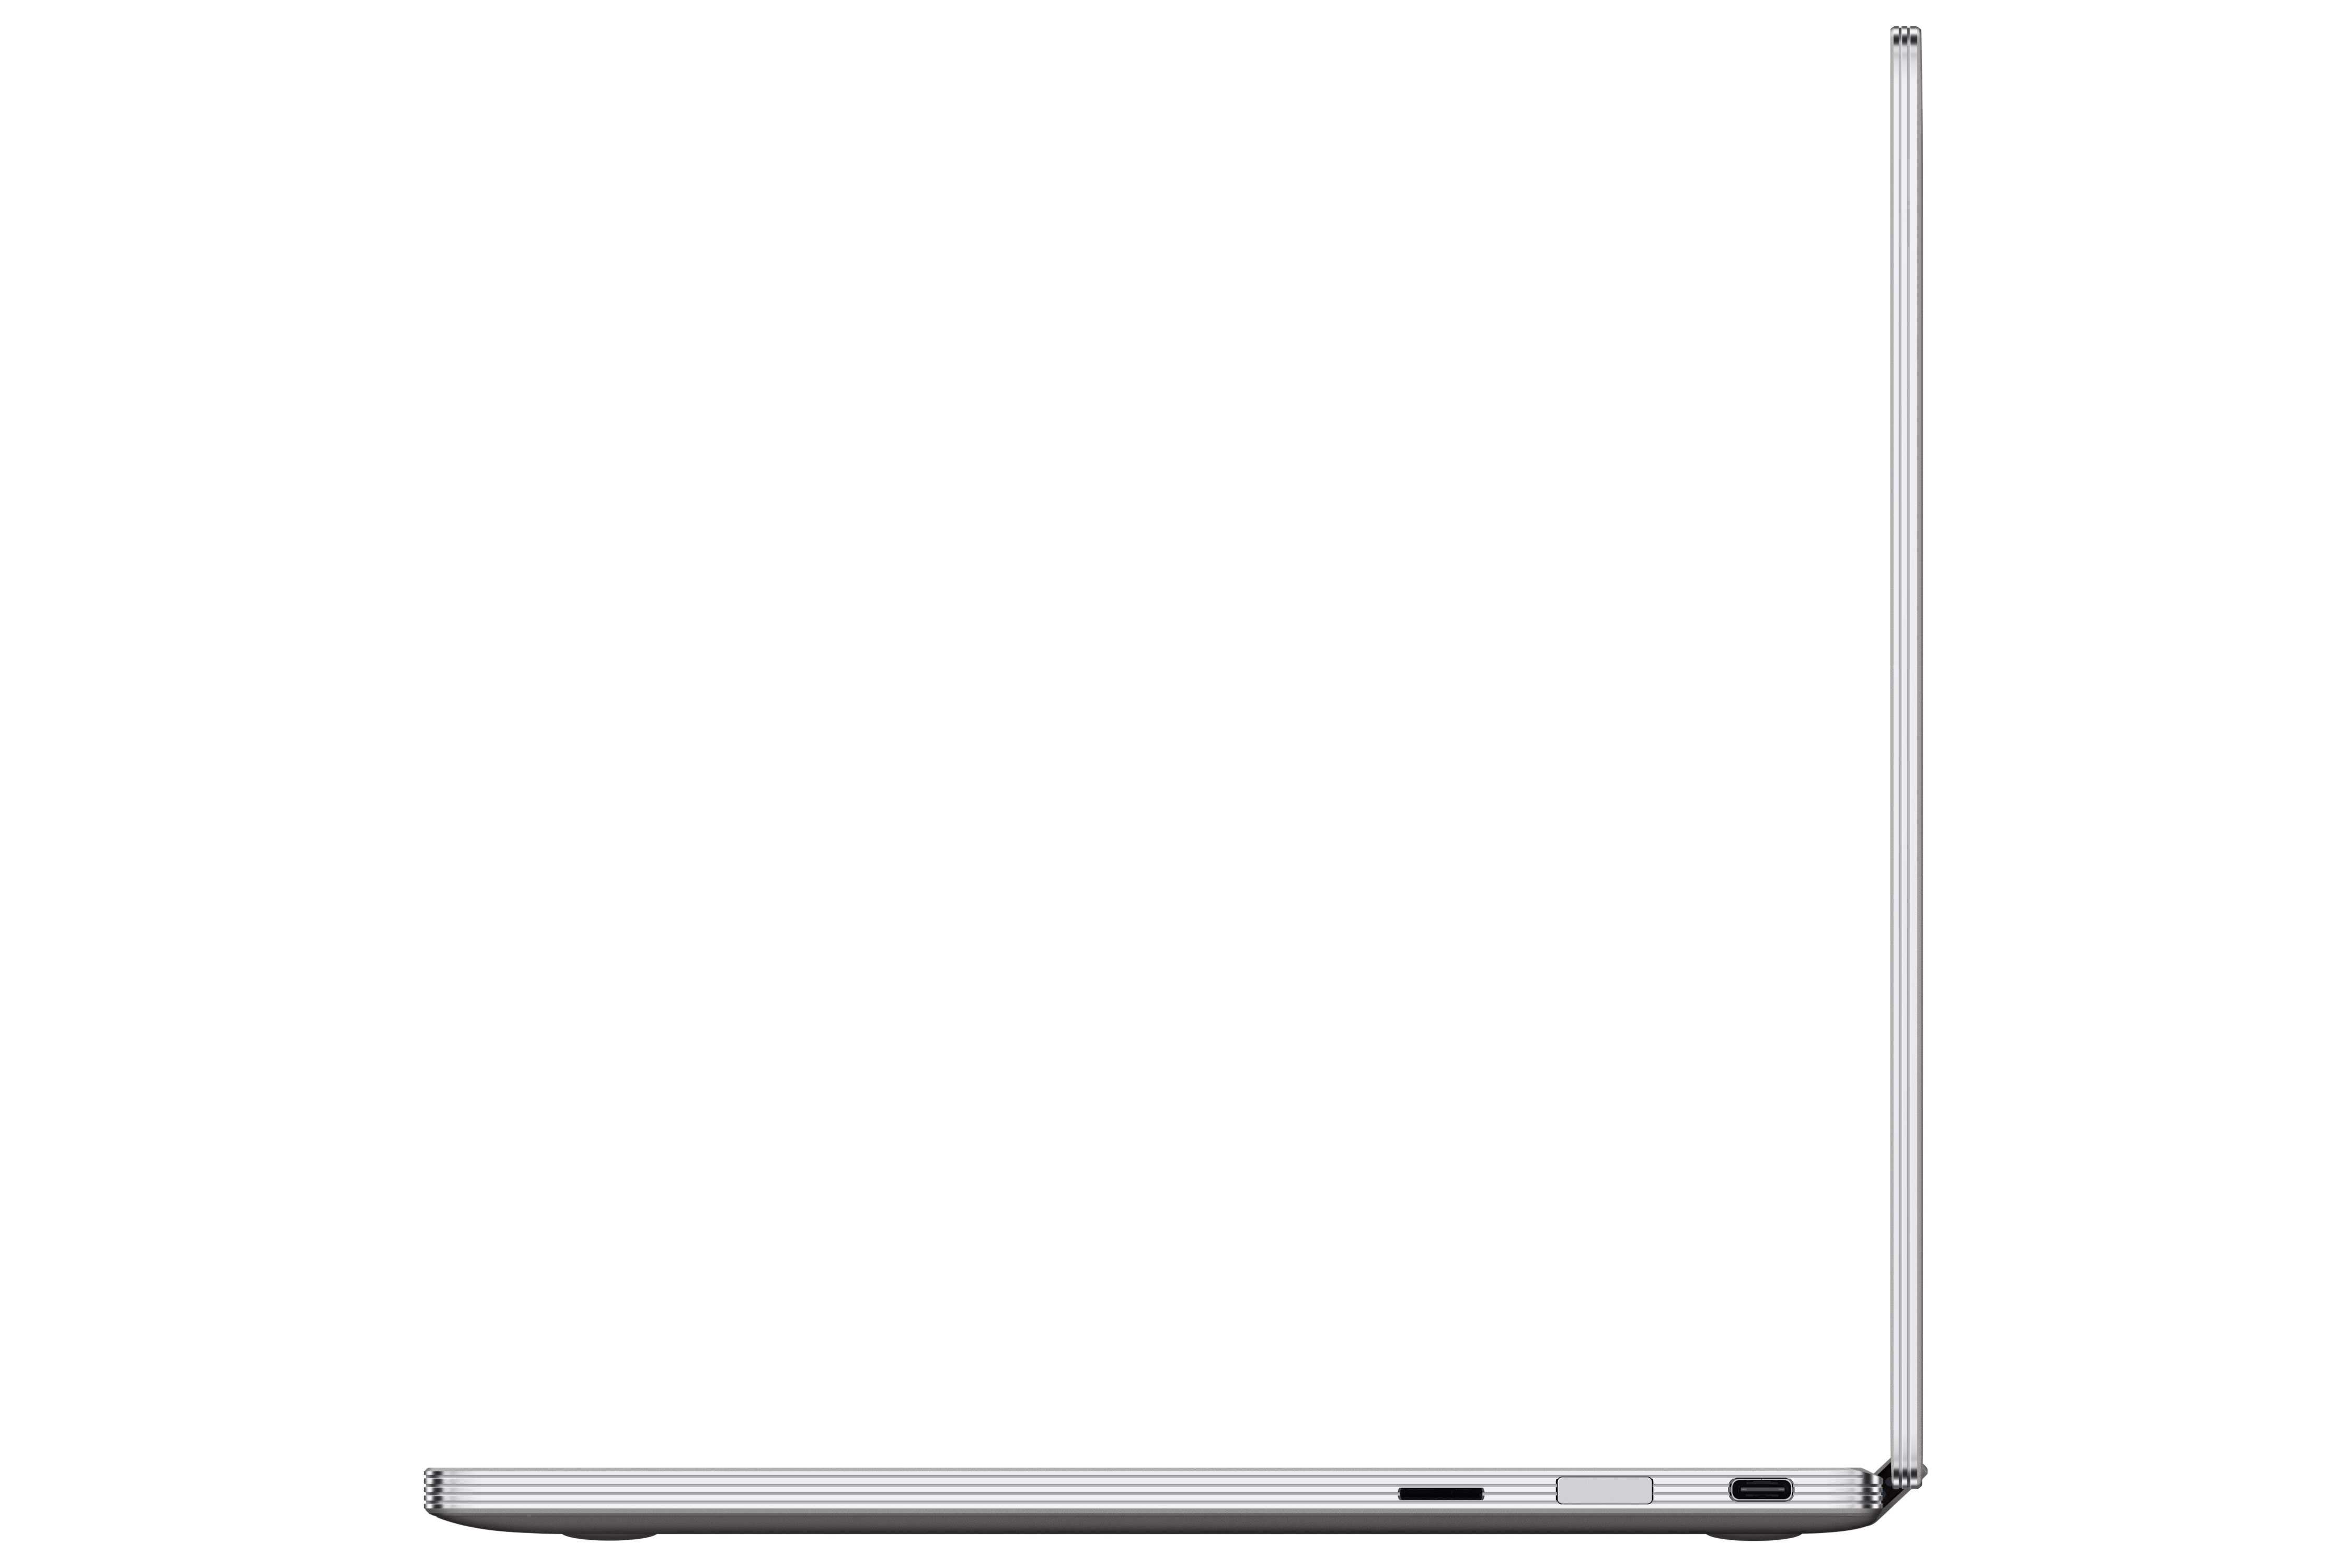 Samsung Notebook 9 NP930MBE-K01US